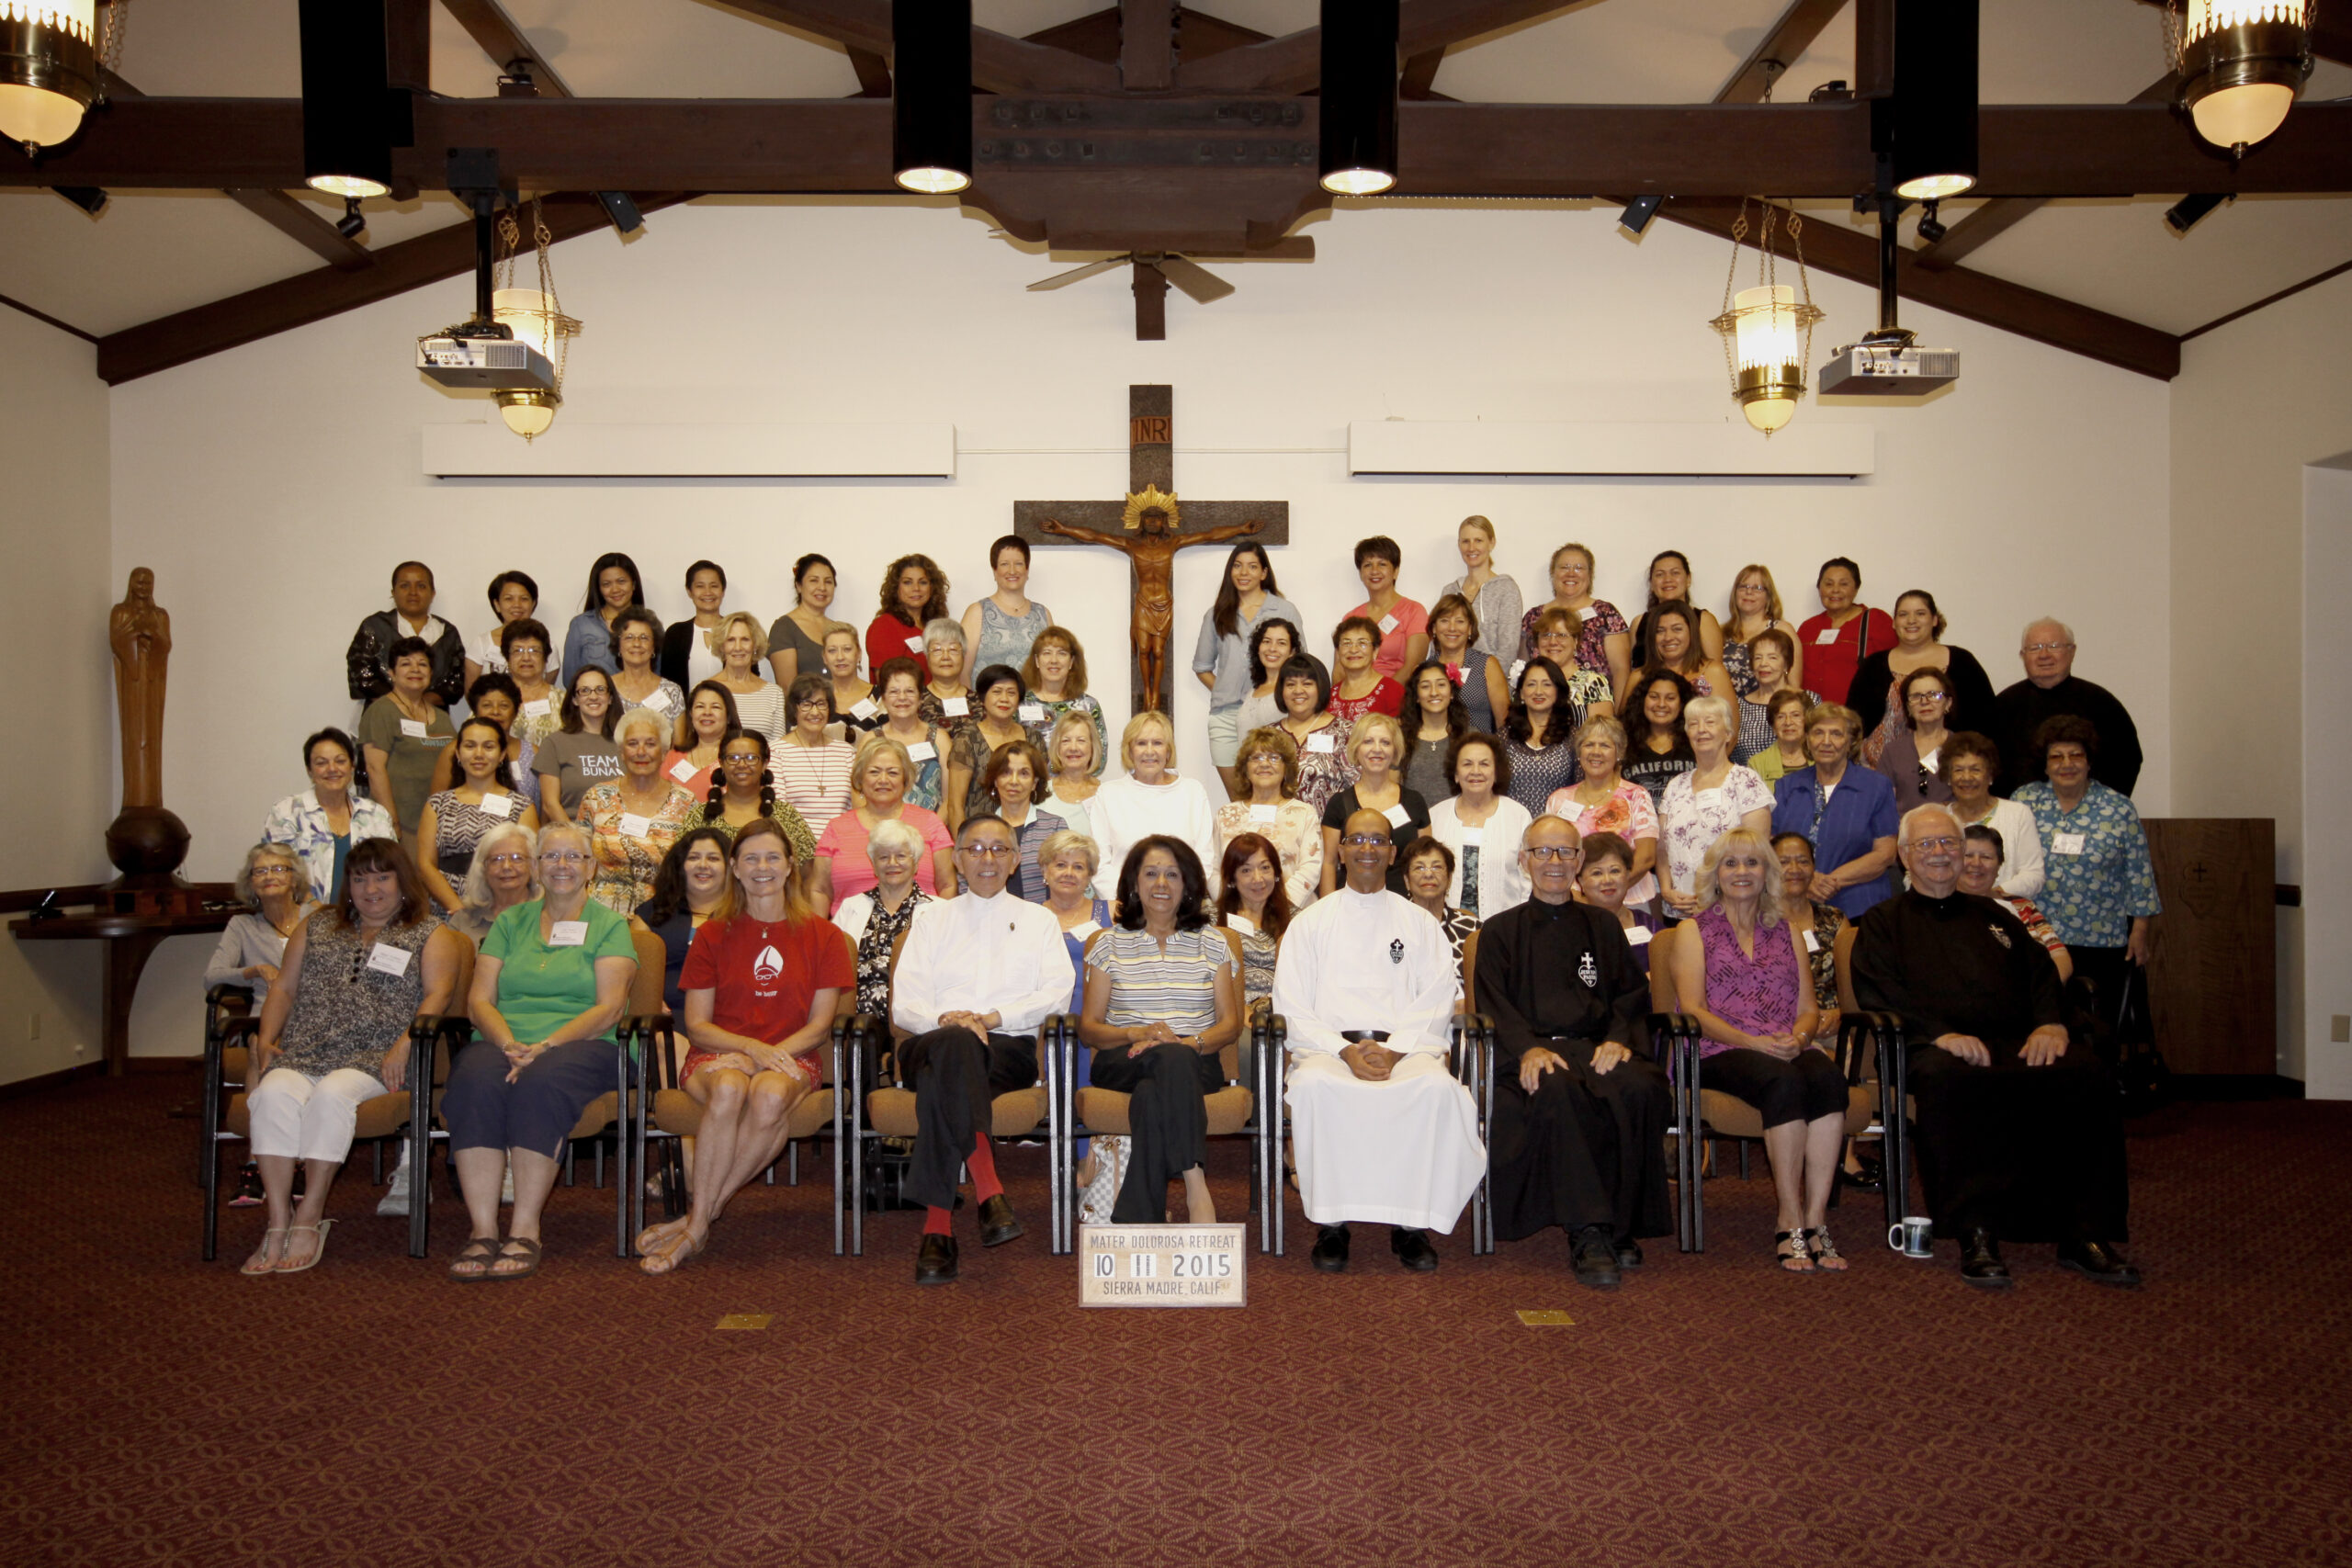 Women's Retreat Weekend, October 9-11, 2015